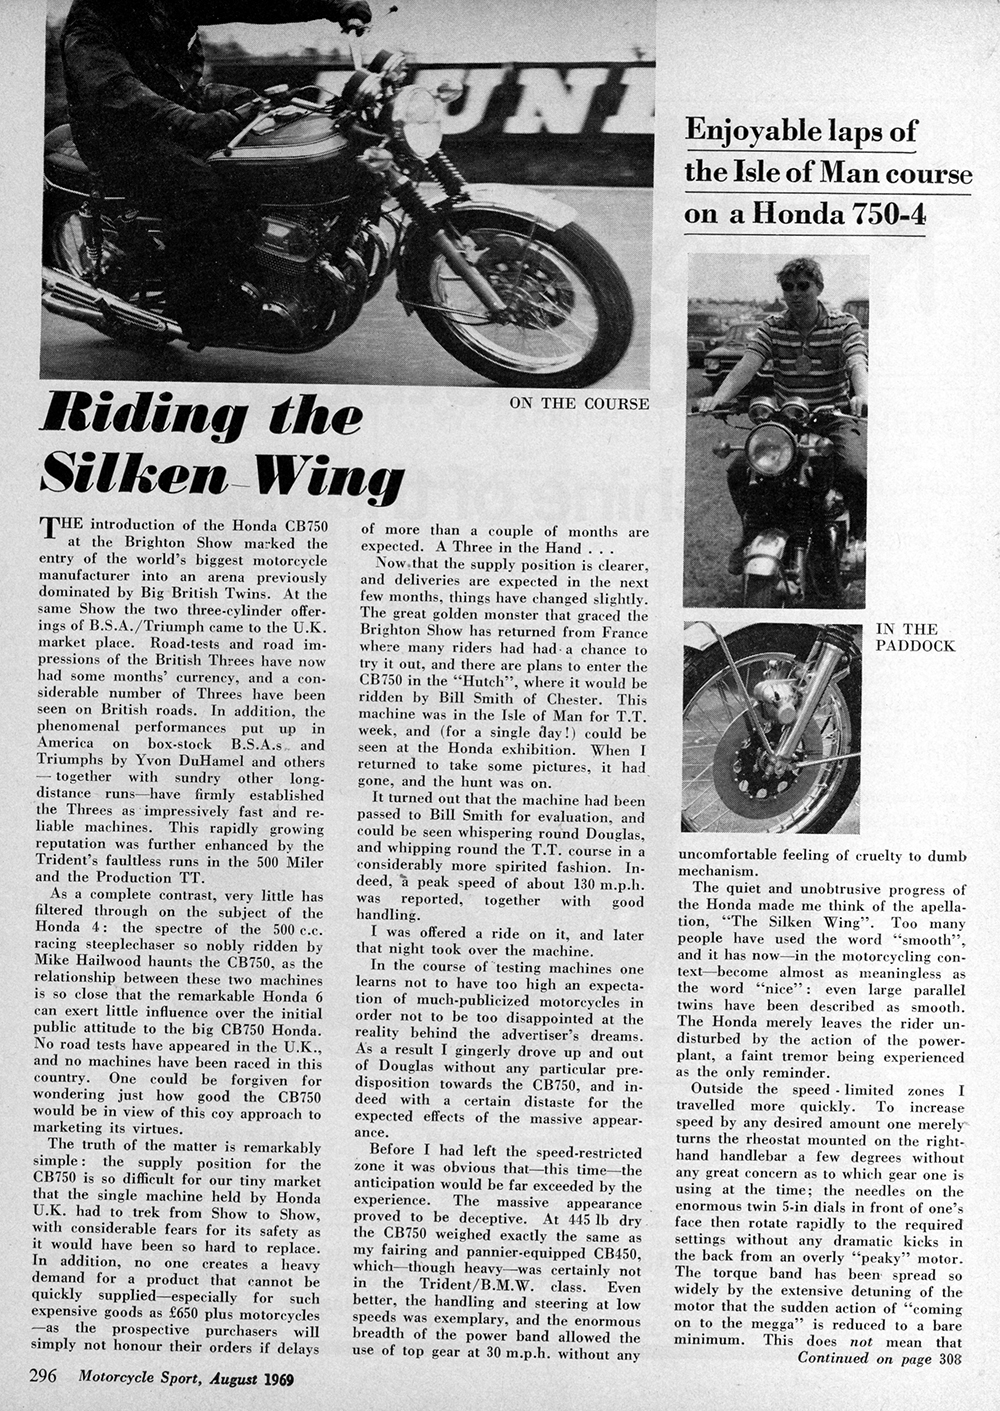 1969 Honda CB750 road test 1 (2).jpg